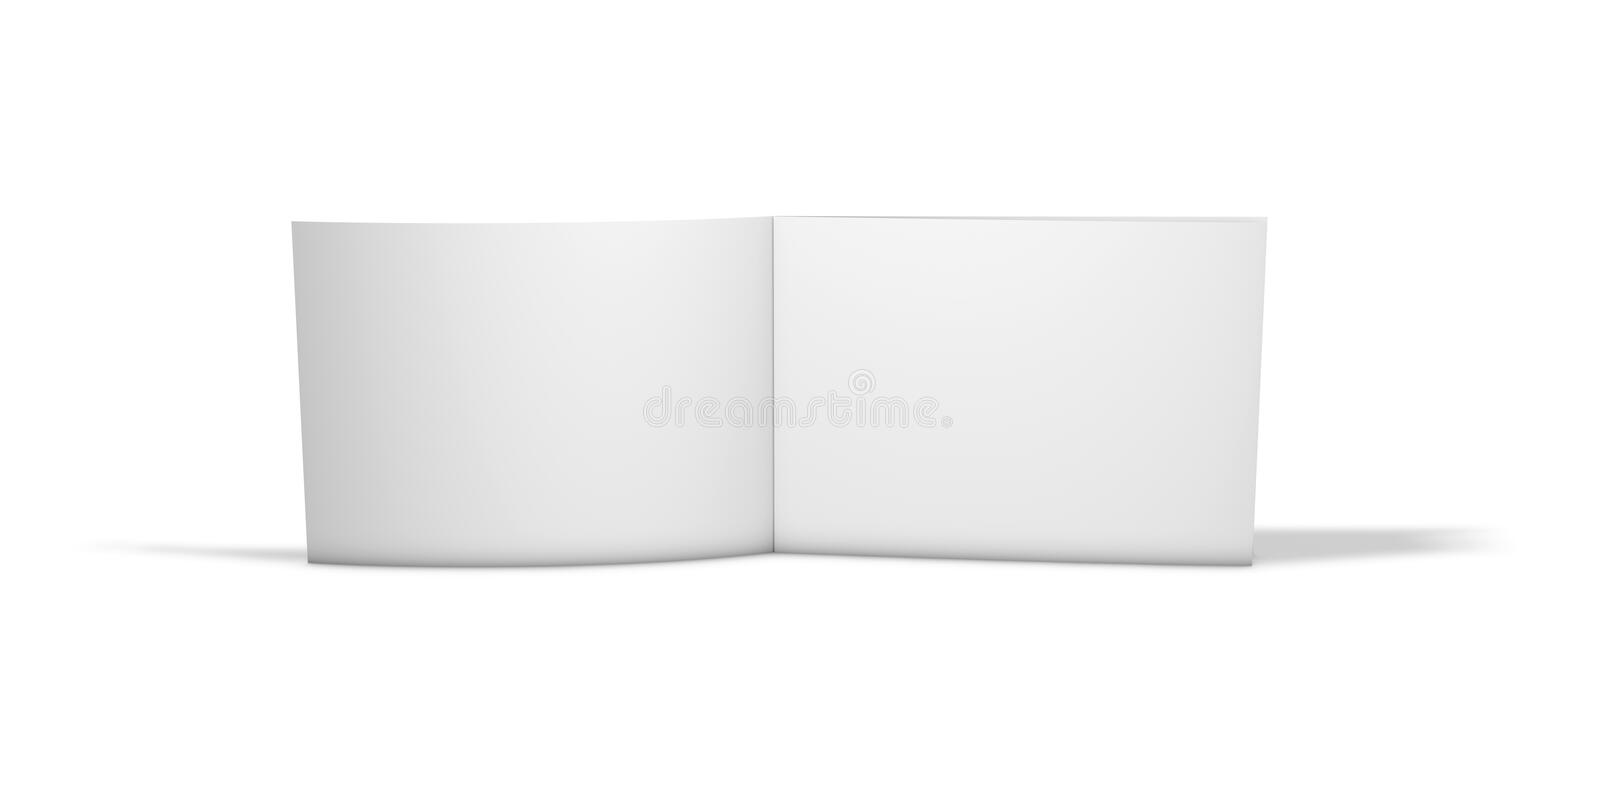 Open horizontal long two pages brochure standing on floor isolated on white background. Open horizontal long two pages brochure standing on floor isolated on royalty free illustration